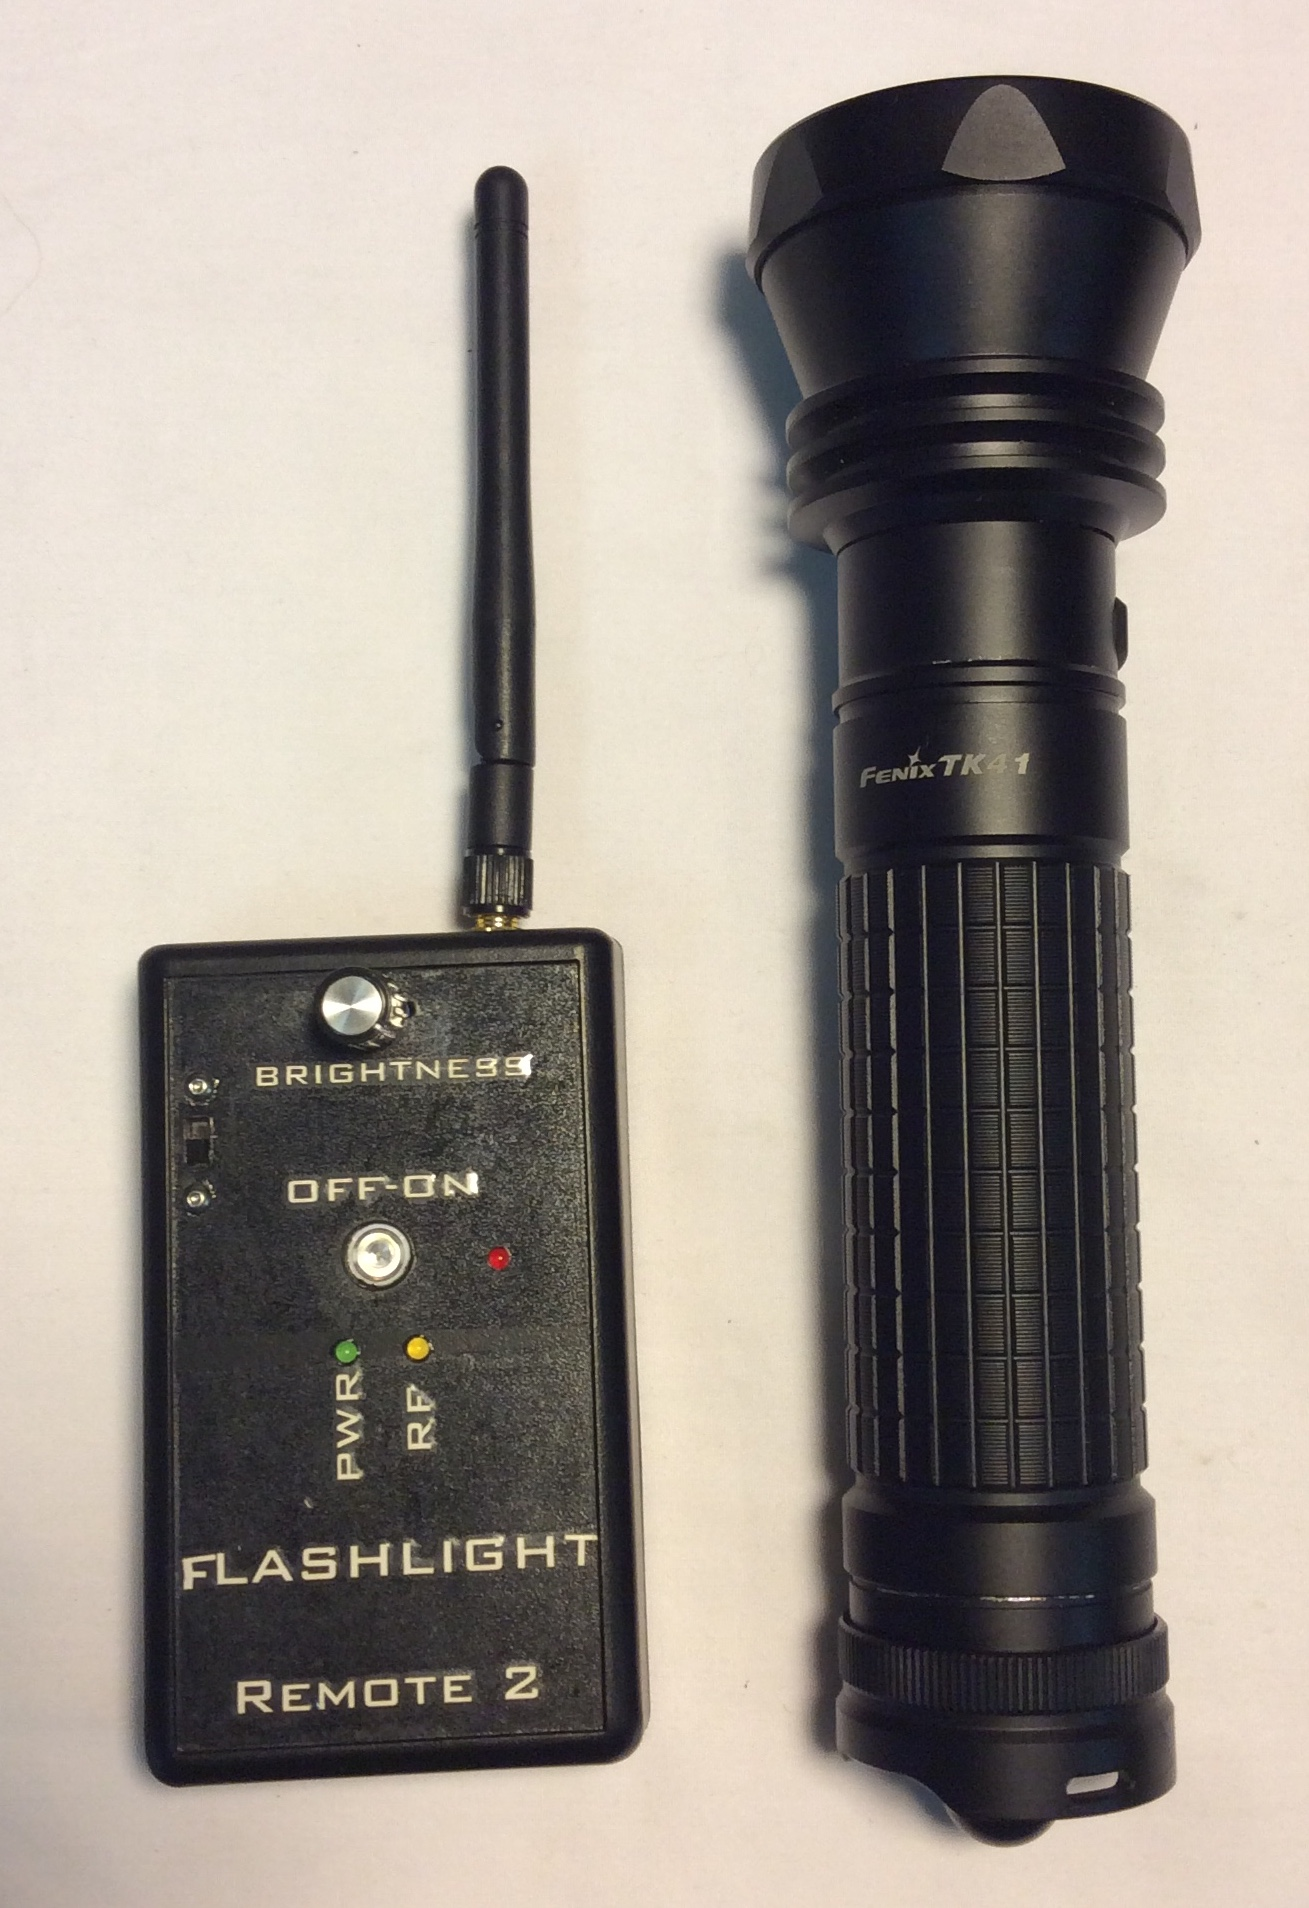 Fenix TK41 Flashlight